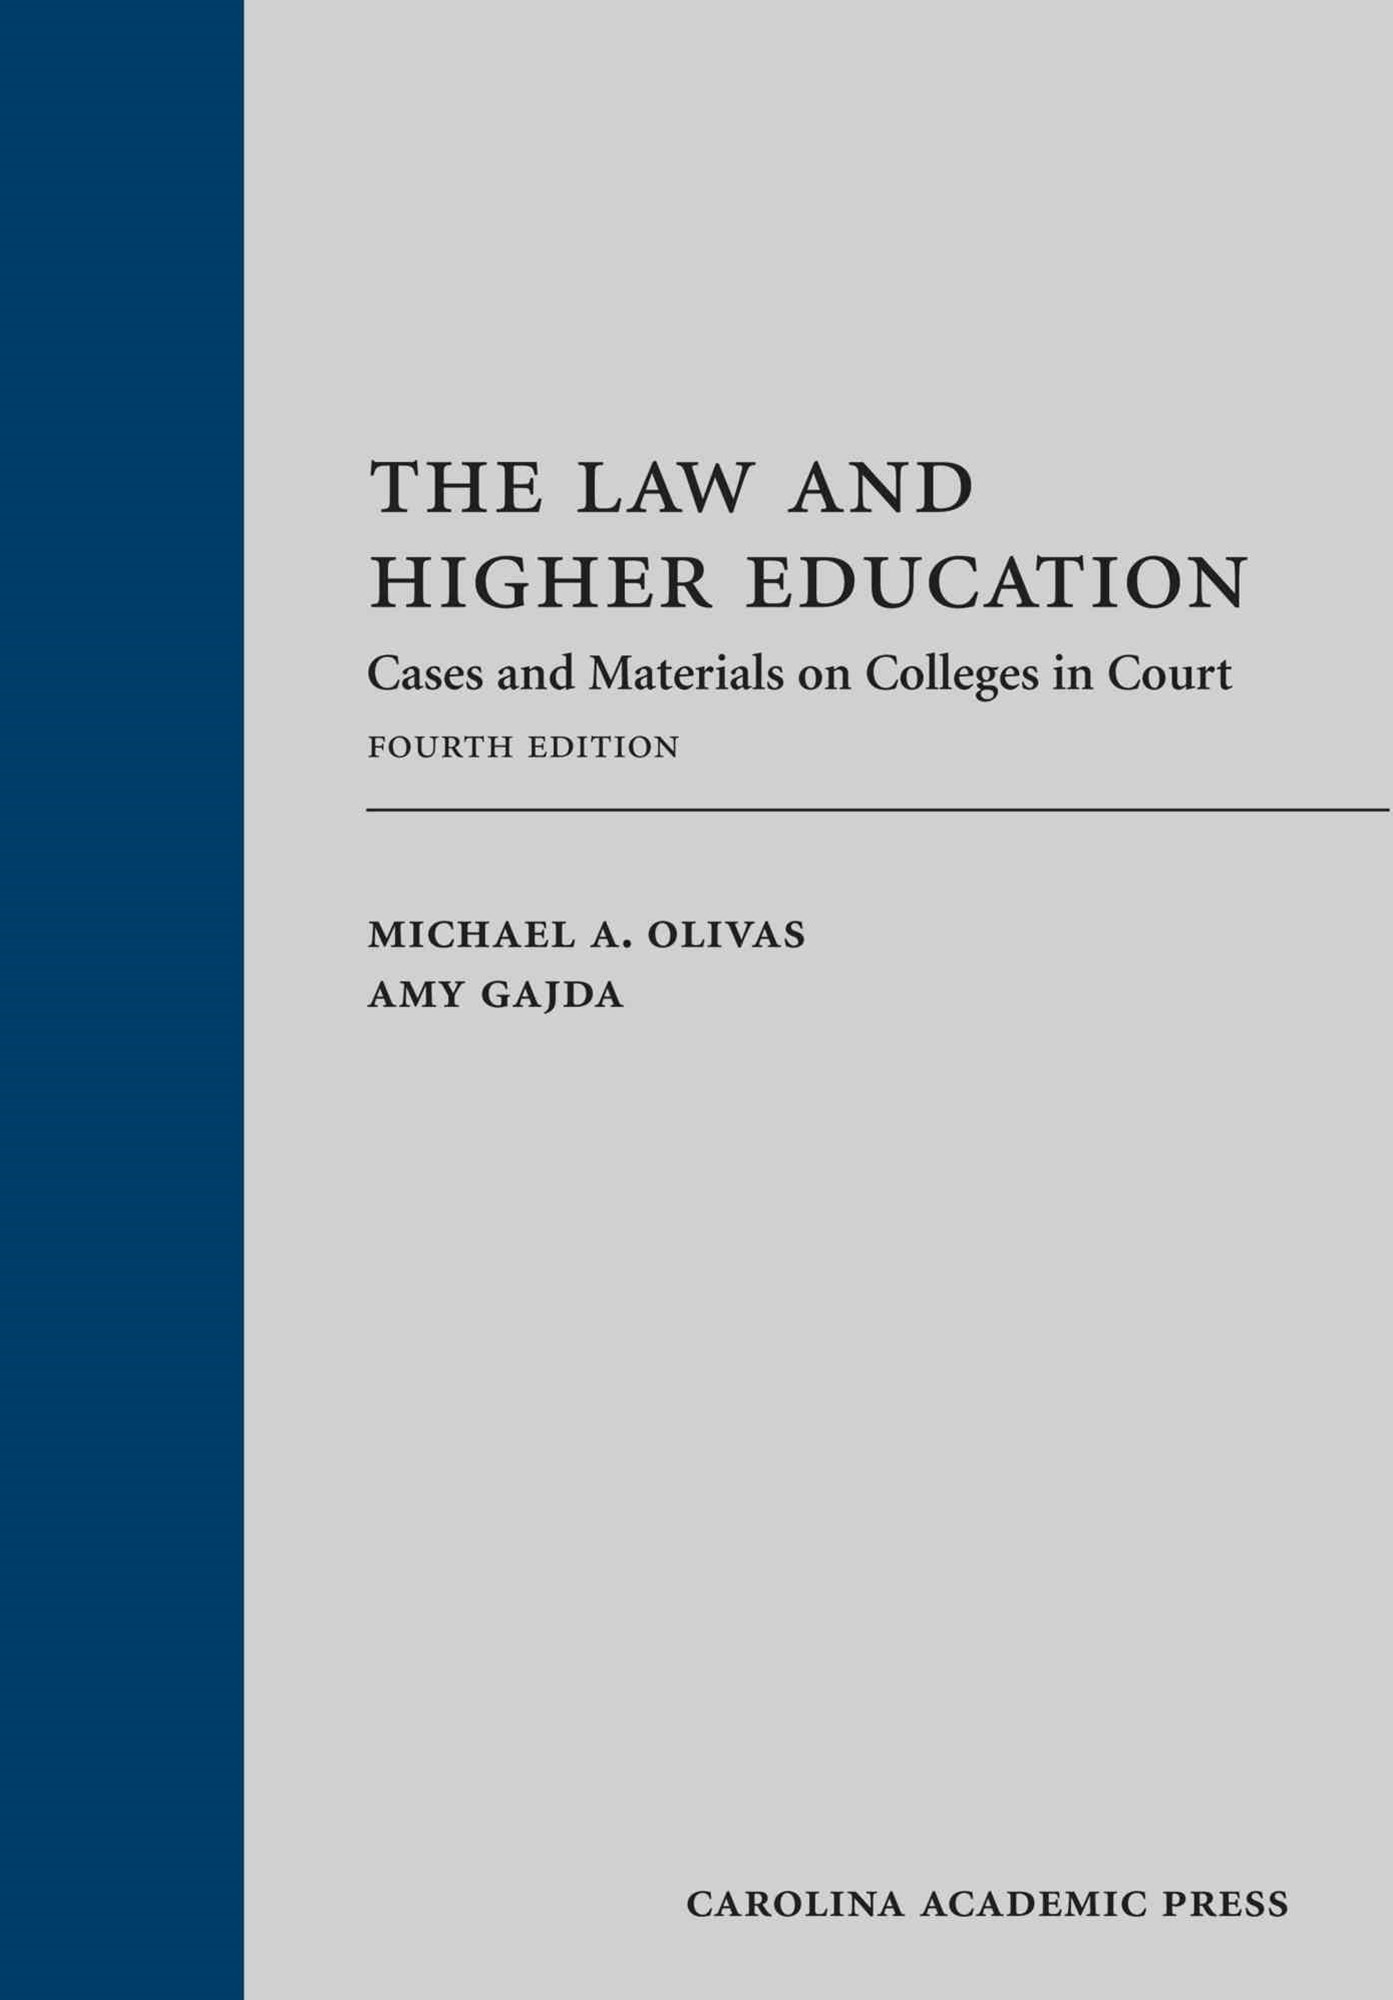 The Law and Higher Education